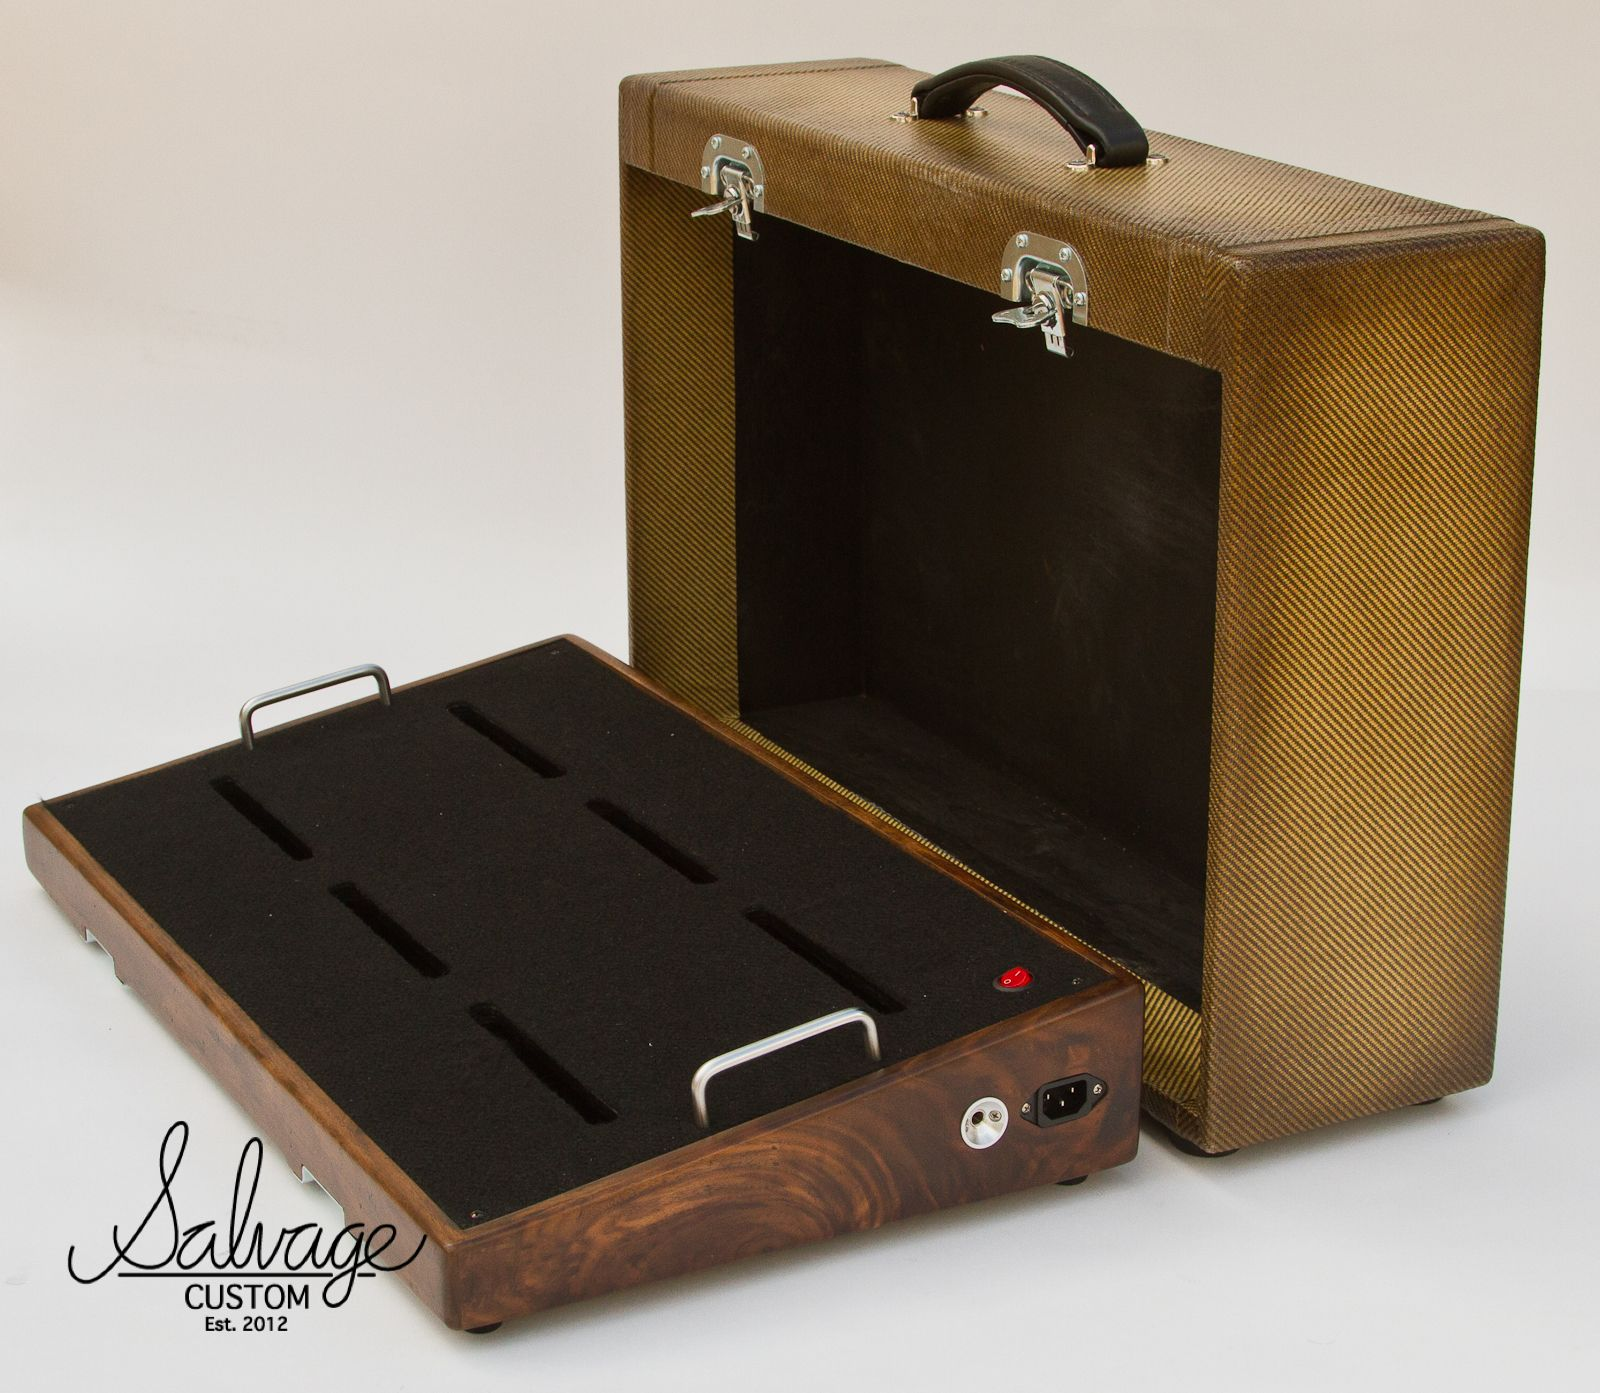 Pedalboard. Love The Finish And The Suitcase Enclosure